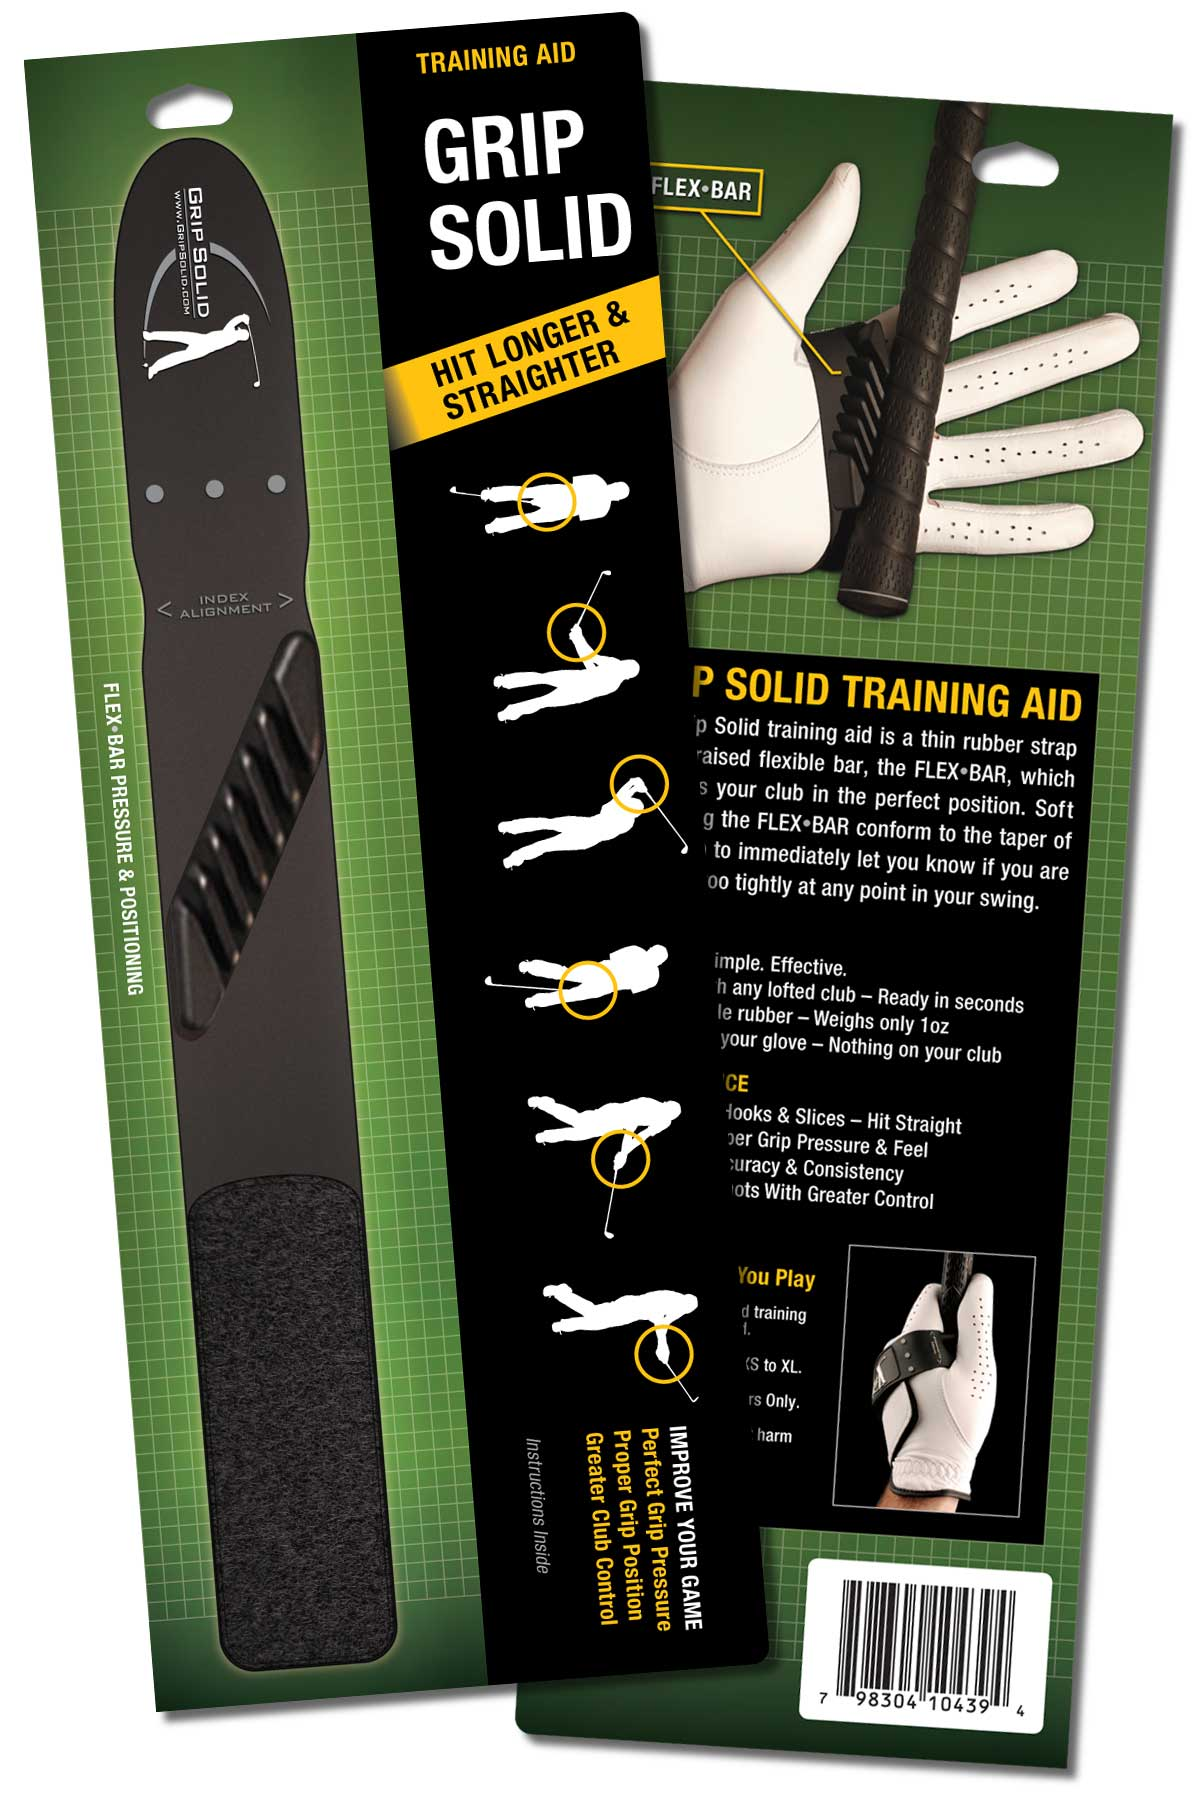 Grip Solid Training Aid